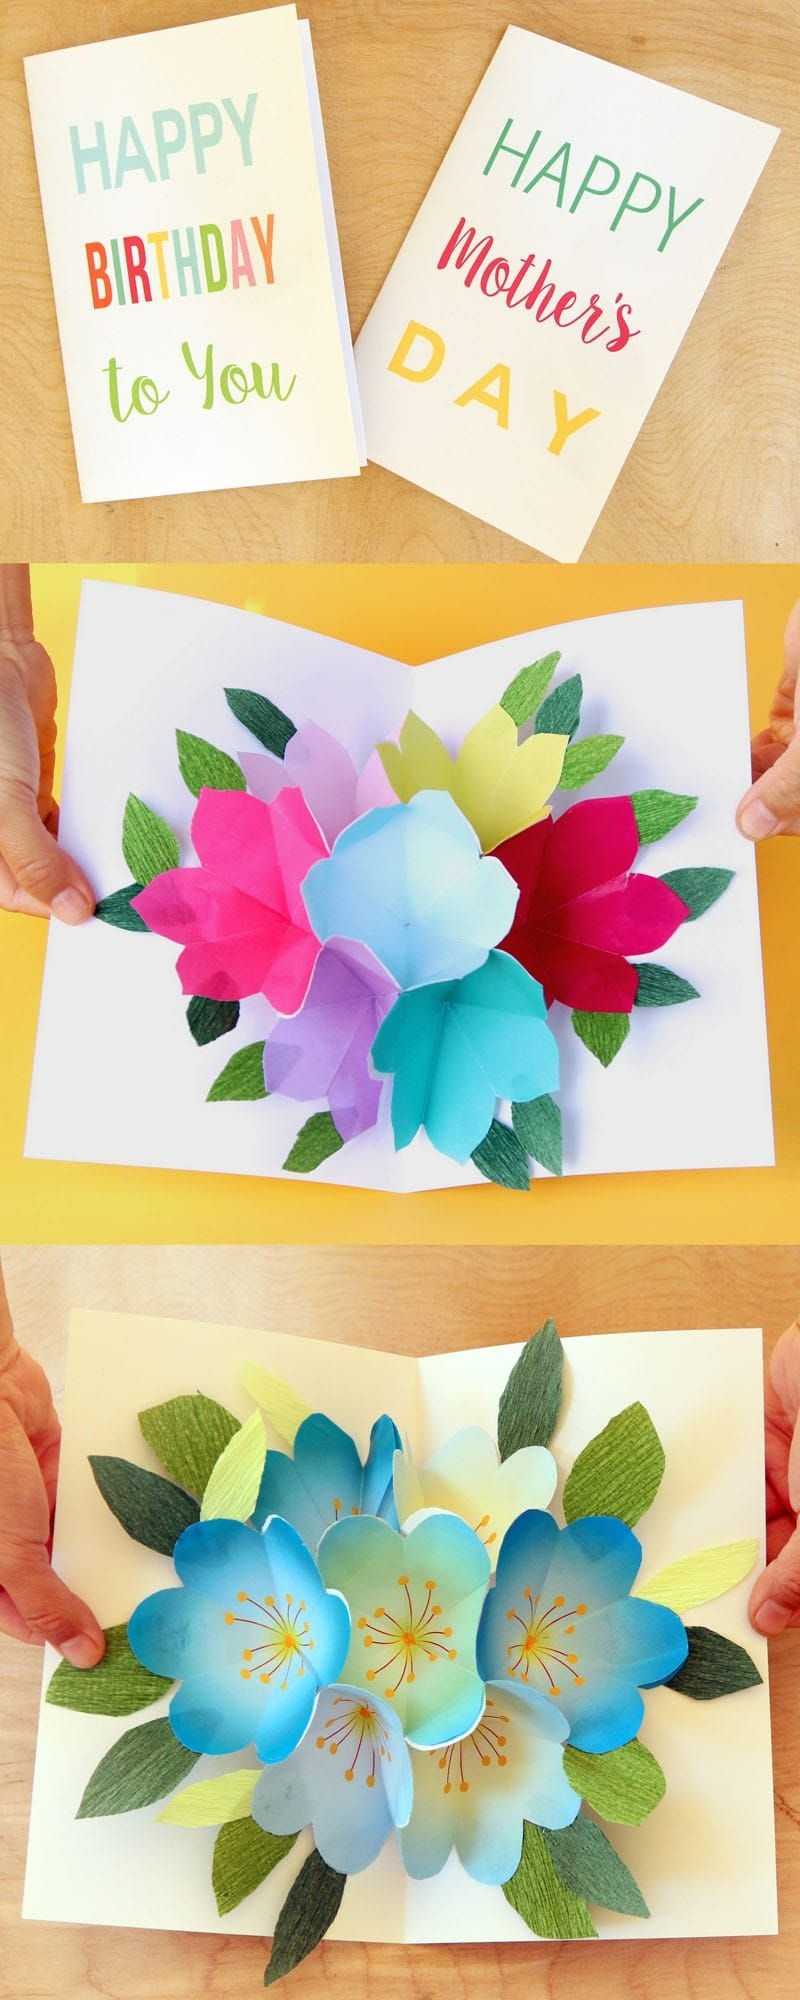 Free Printable Happy Birthday Card With Pop Up Bouquet | Printables - Create Greeting Cards Online Free Printable